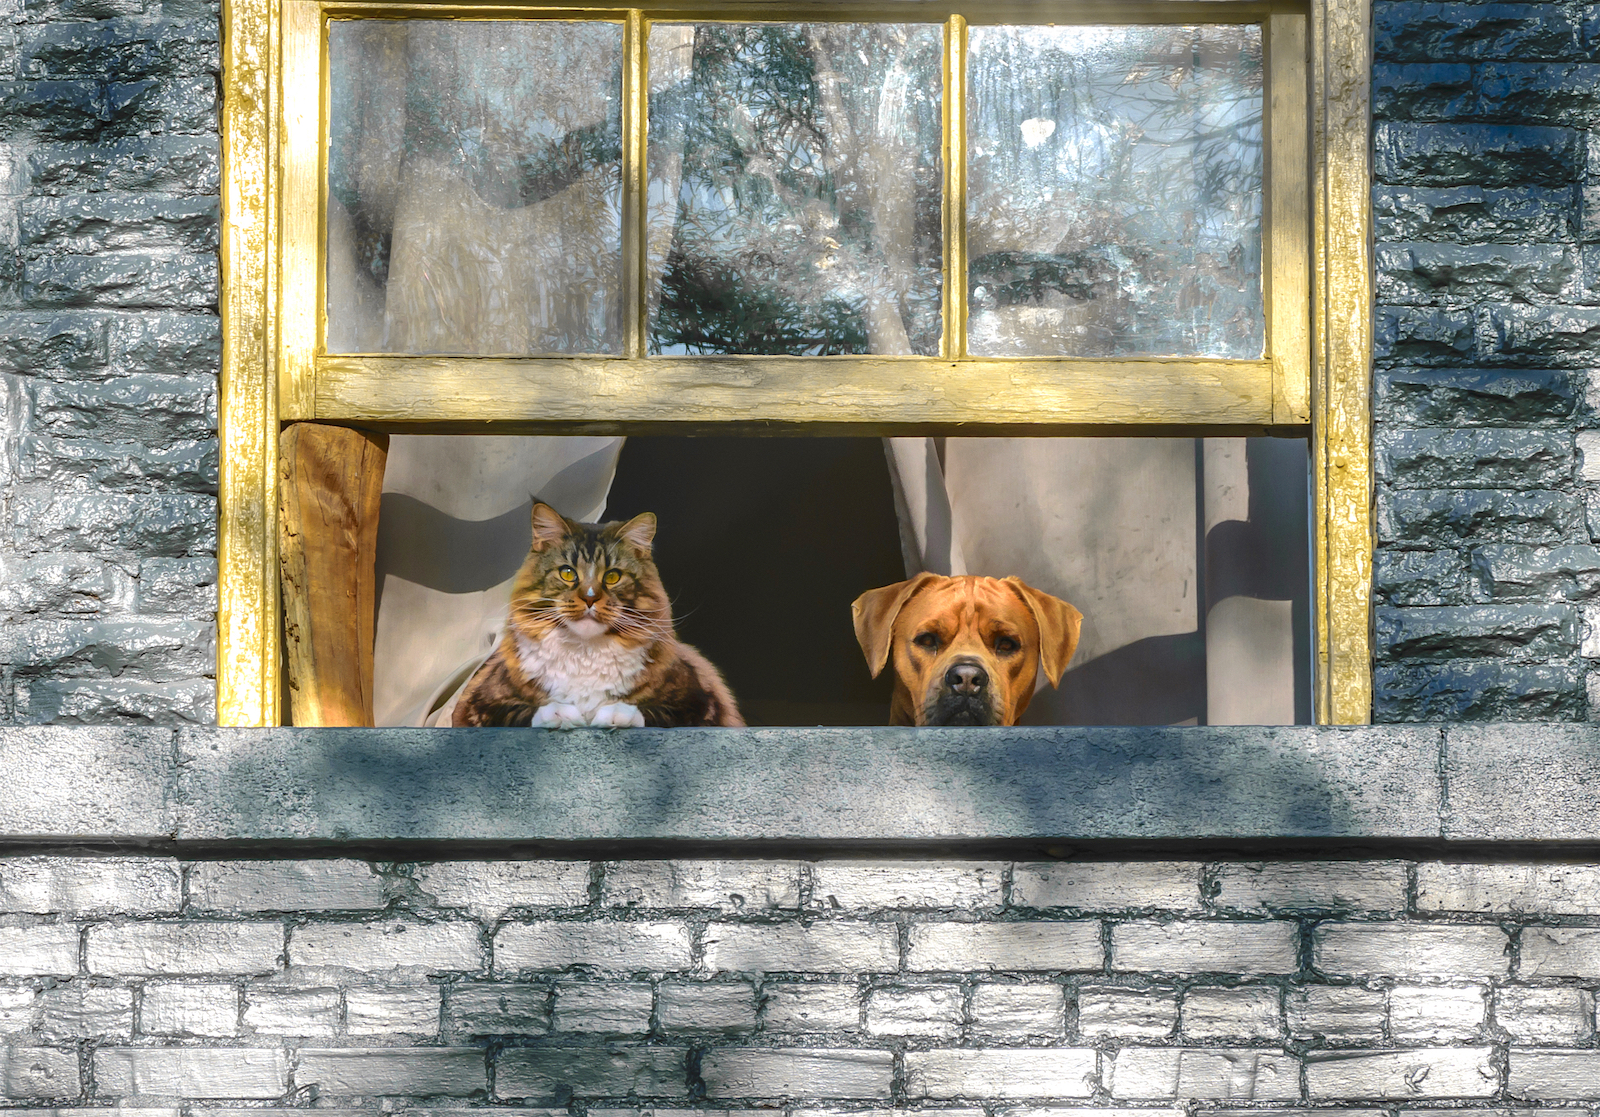 Lessons from Katrina: How to Keep Pets Safe in a Hurricane